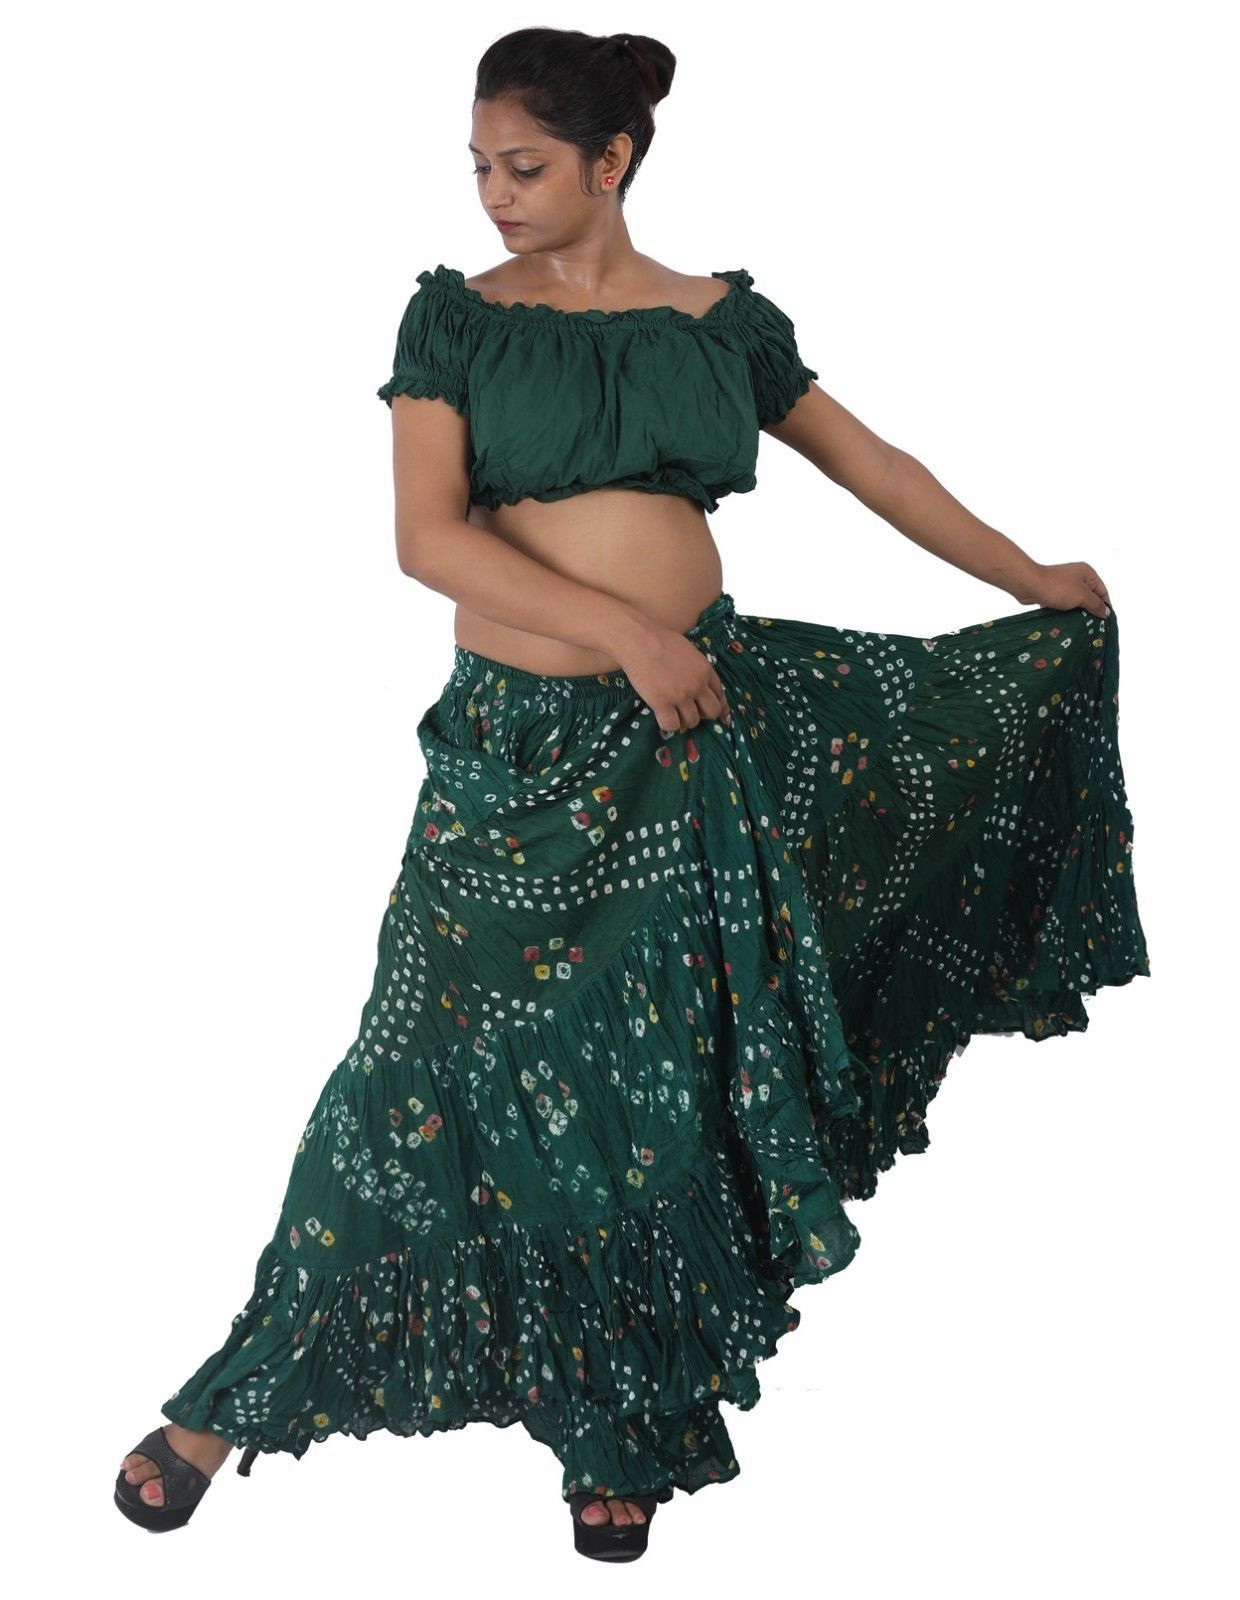 Cotton JAIPUR Tribal 25 Yard 4Tier Gypsy Skirt Belly Dance  Tie /& Dye Polka Dot